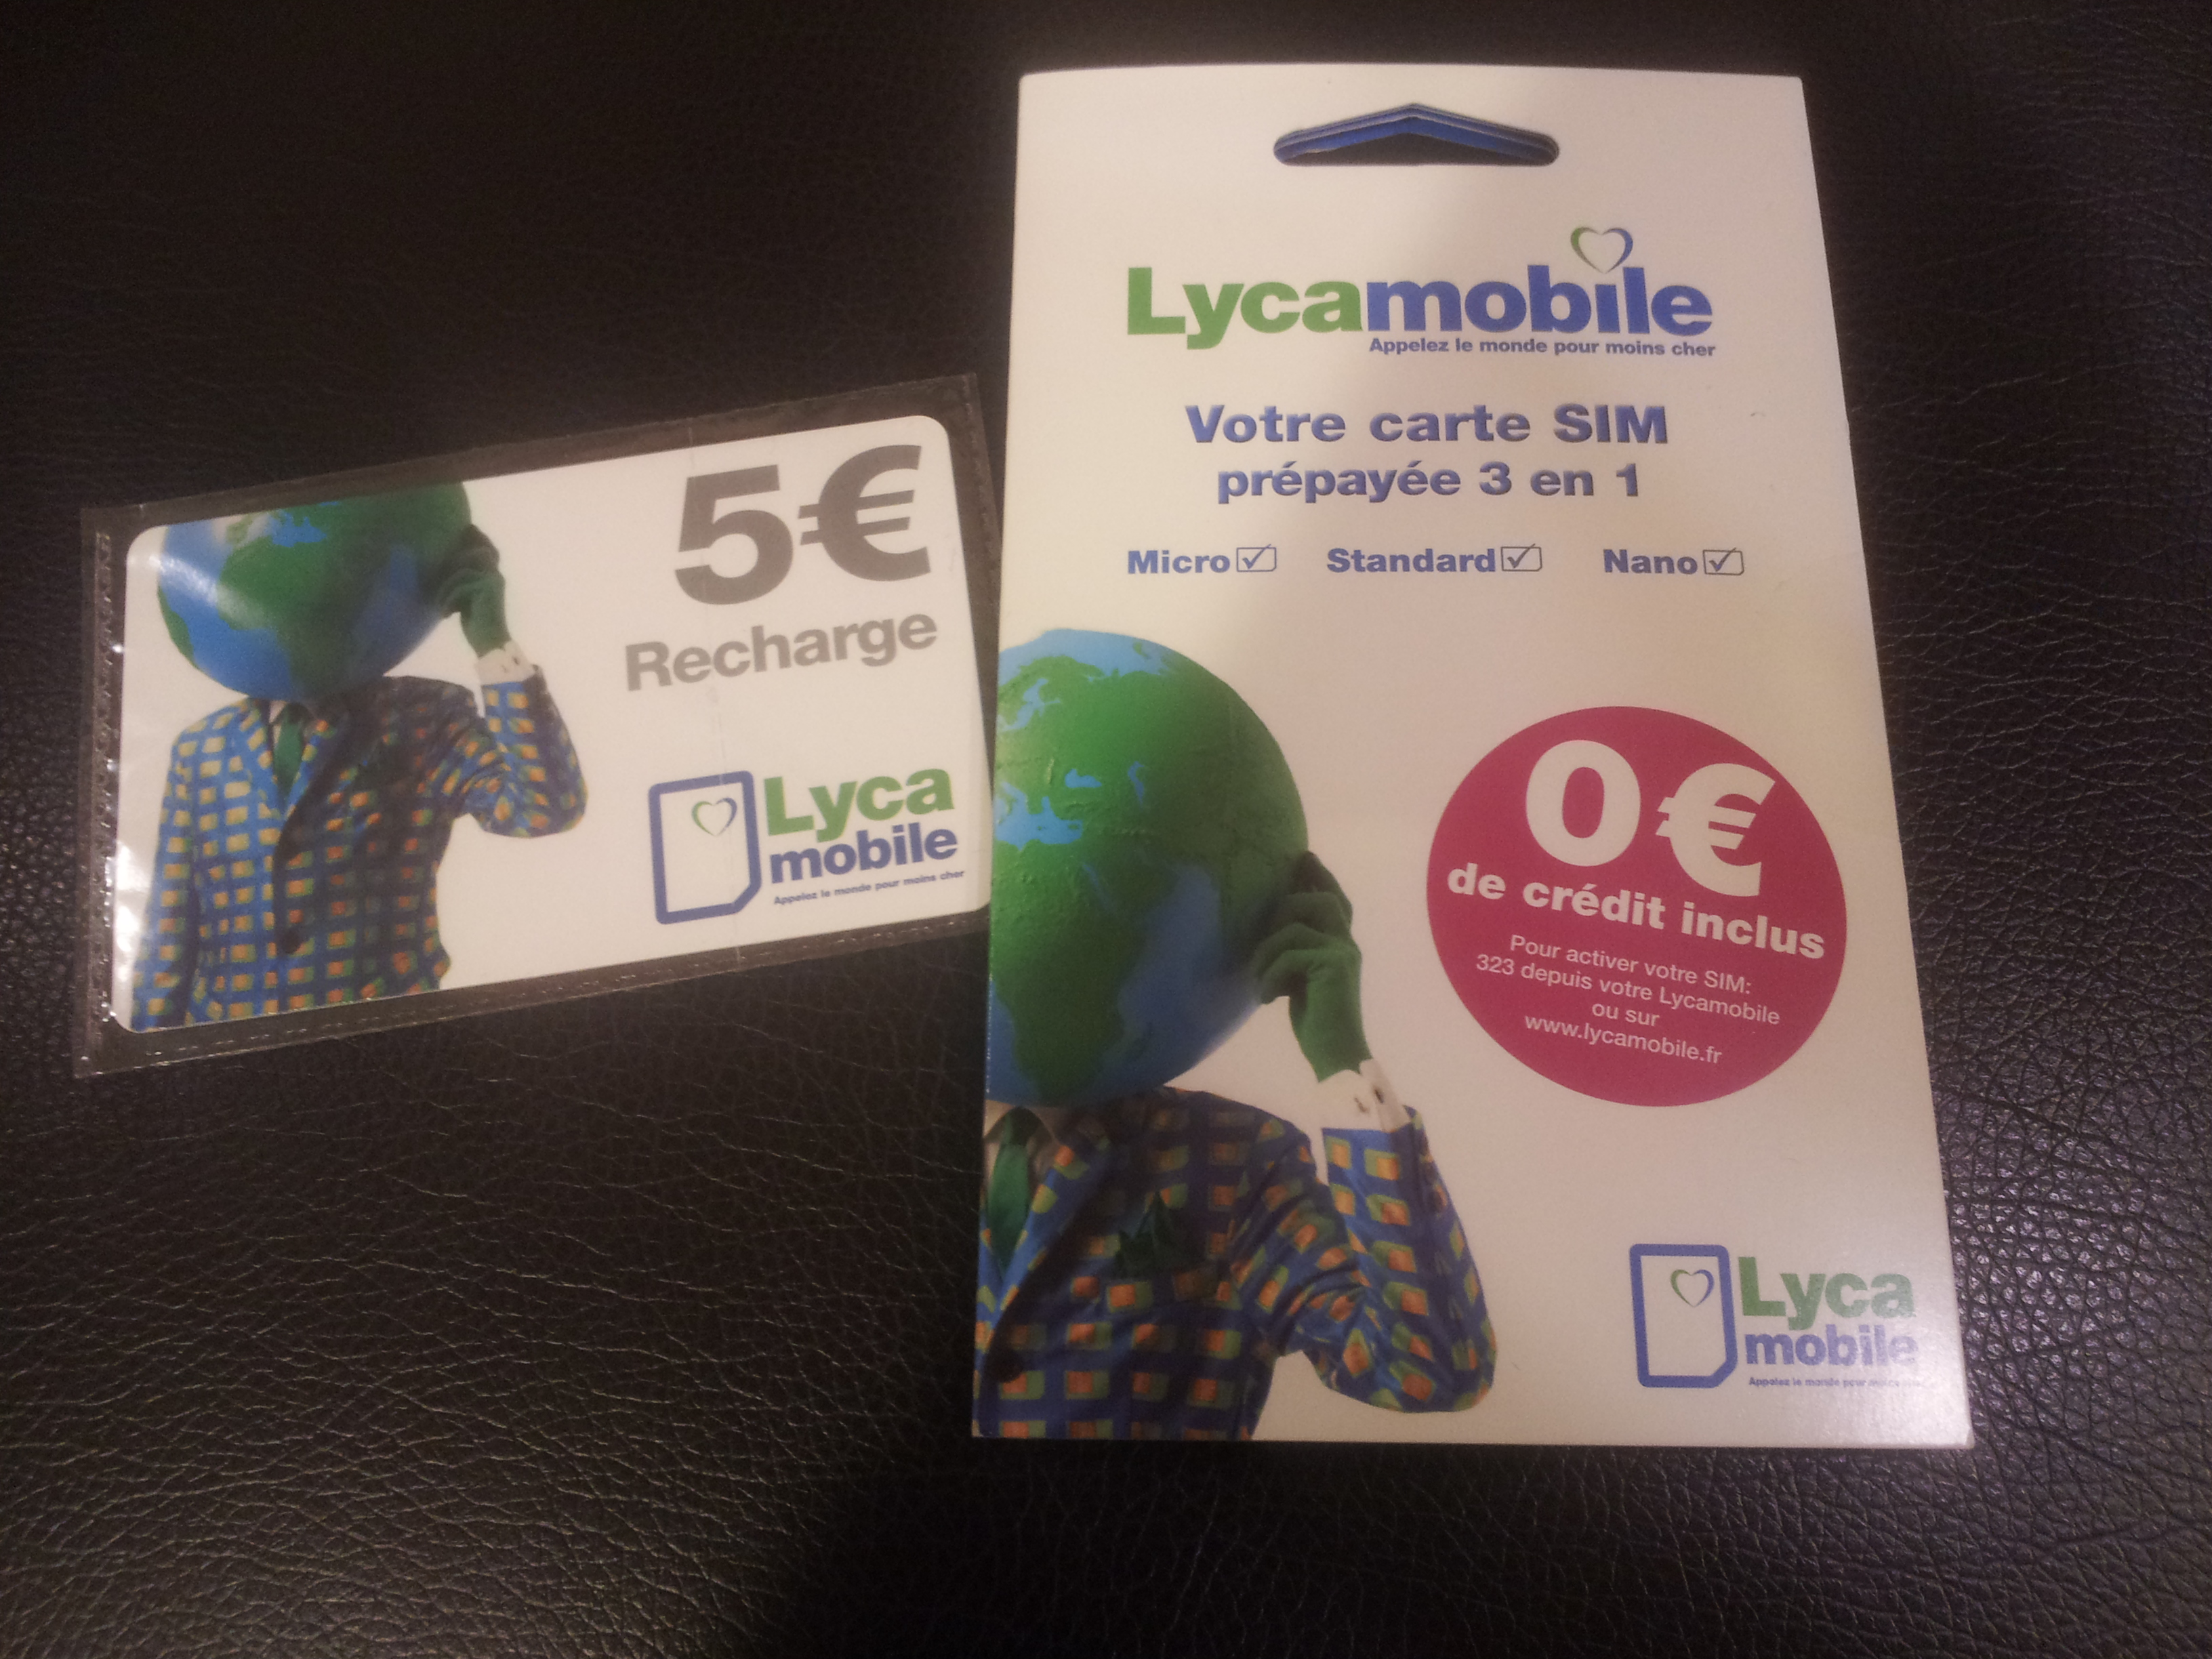 www.lycamobile.fr activation carte sim HOWTO Anonymous mobile in Paris – Loic Dachary